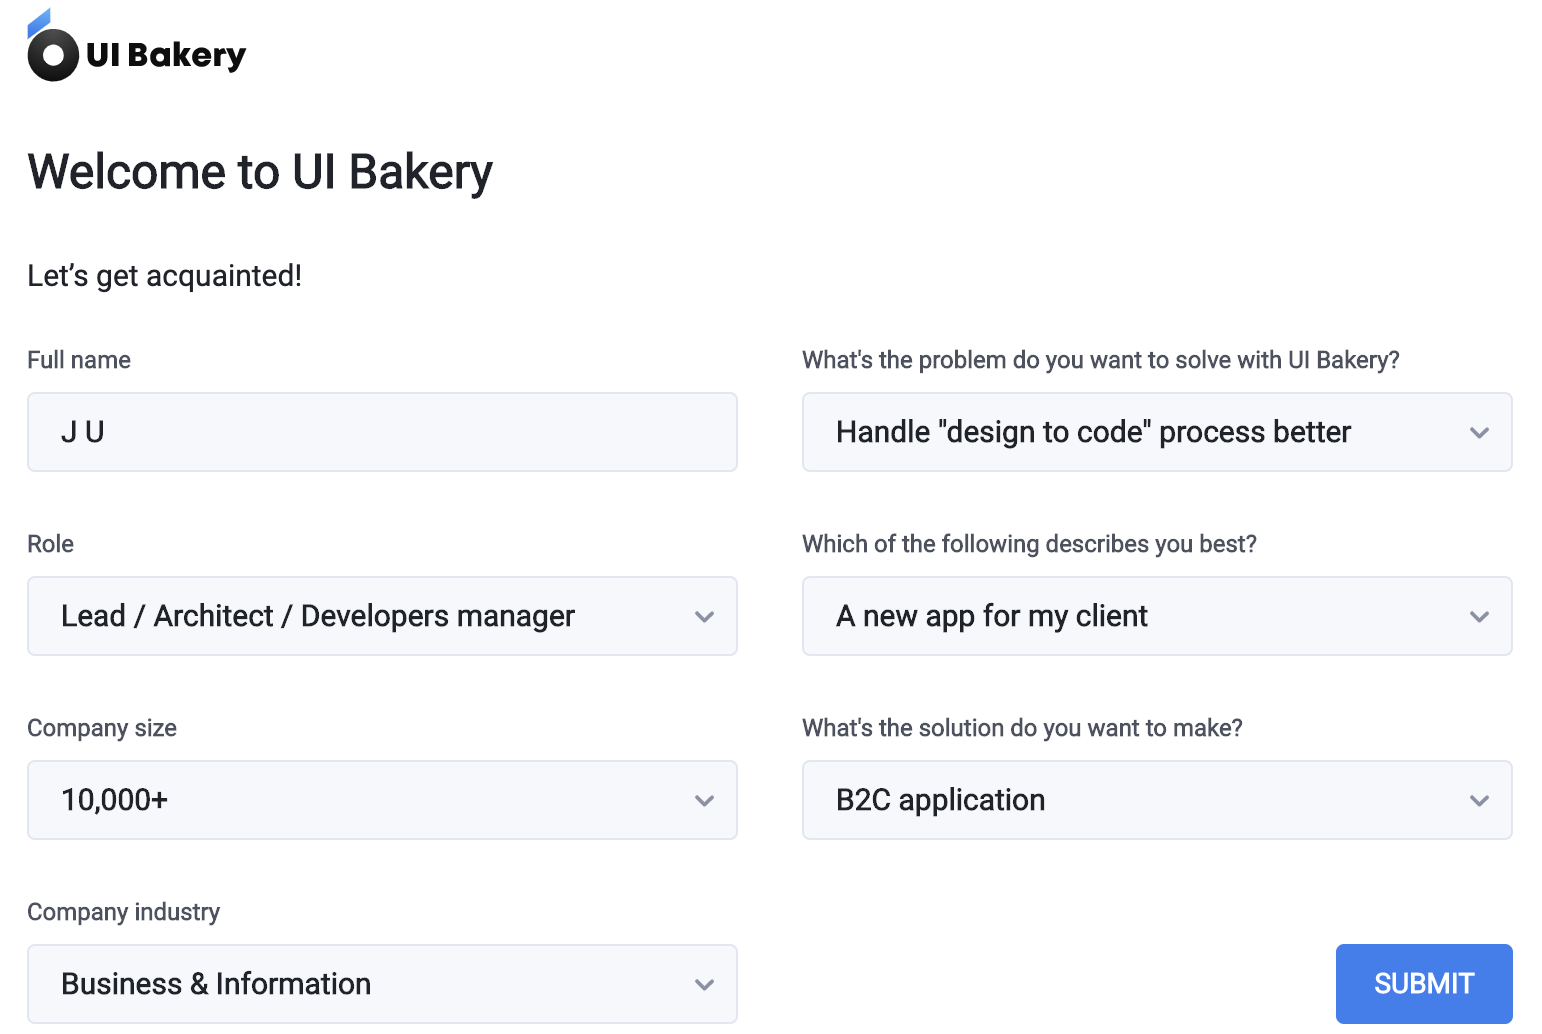 UI Bakery question